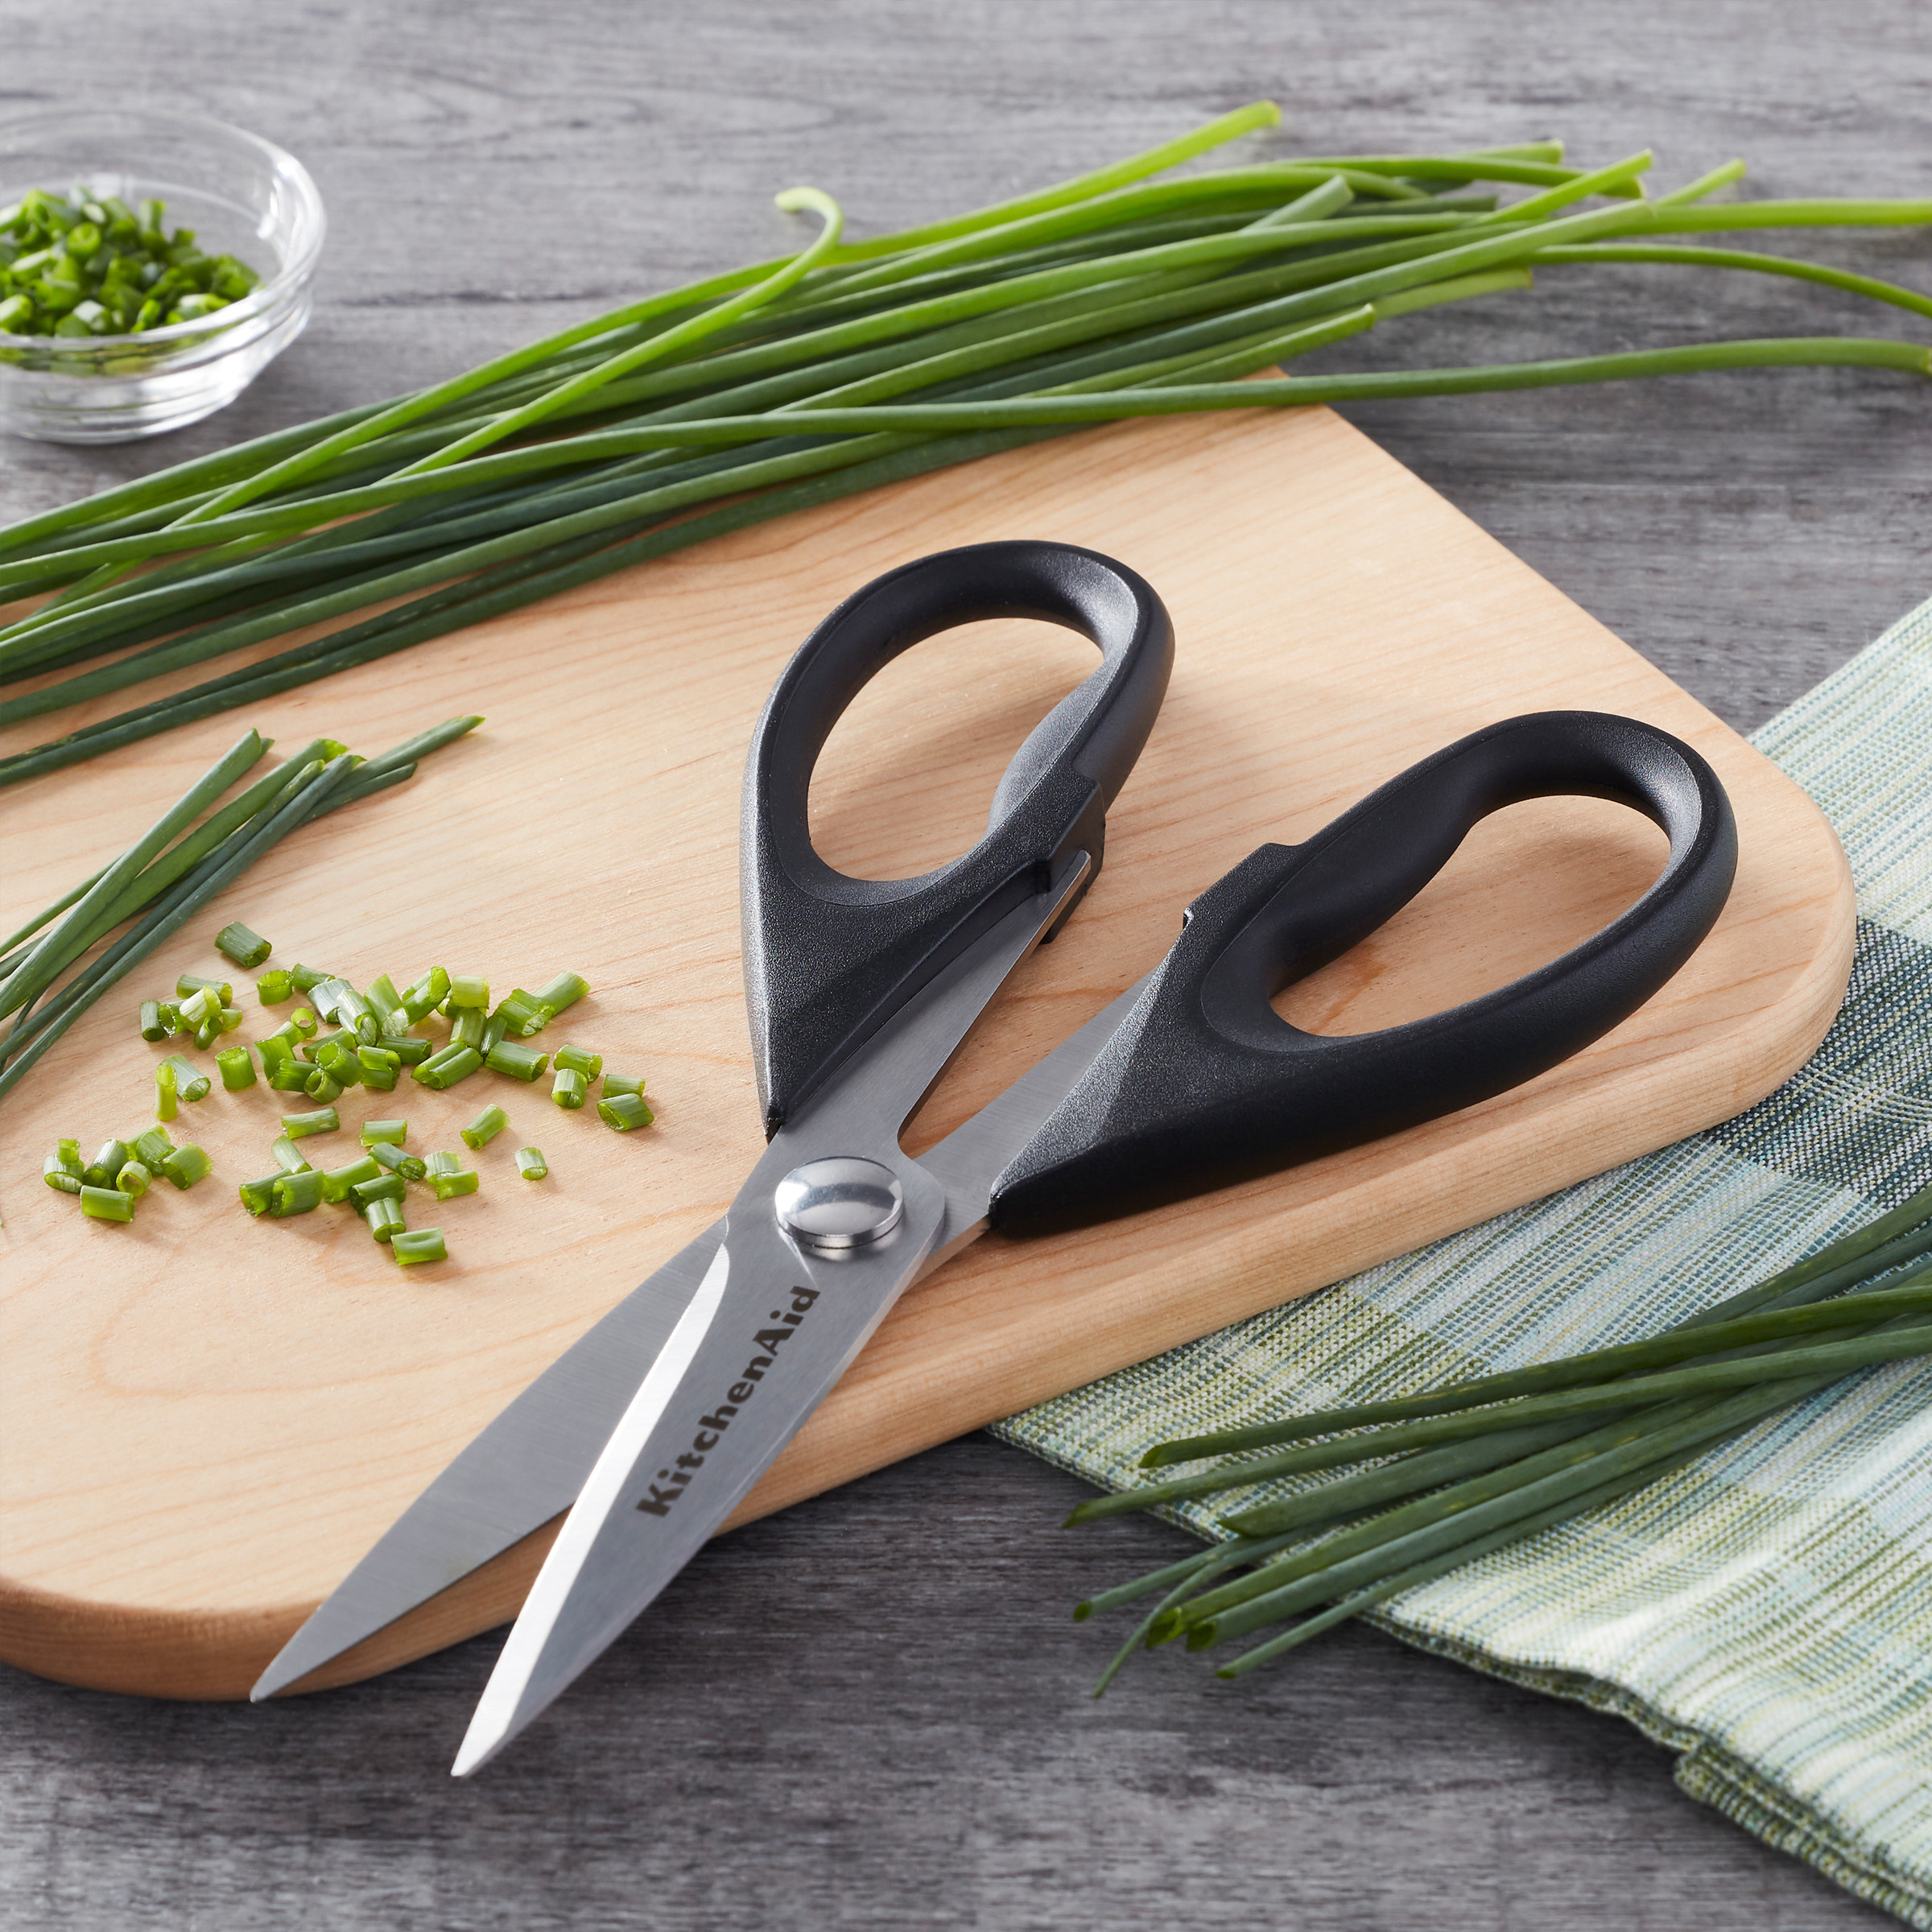 The shears, on a cutting board, shown with herbs